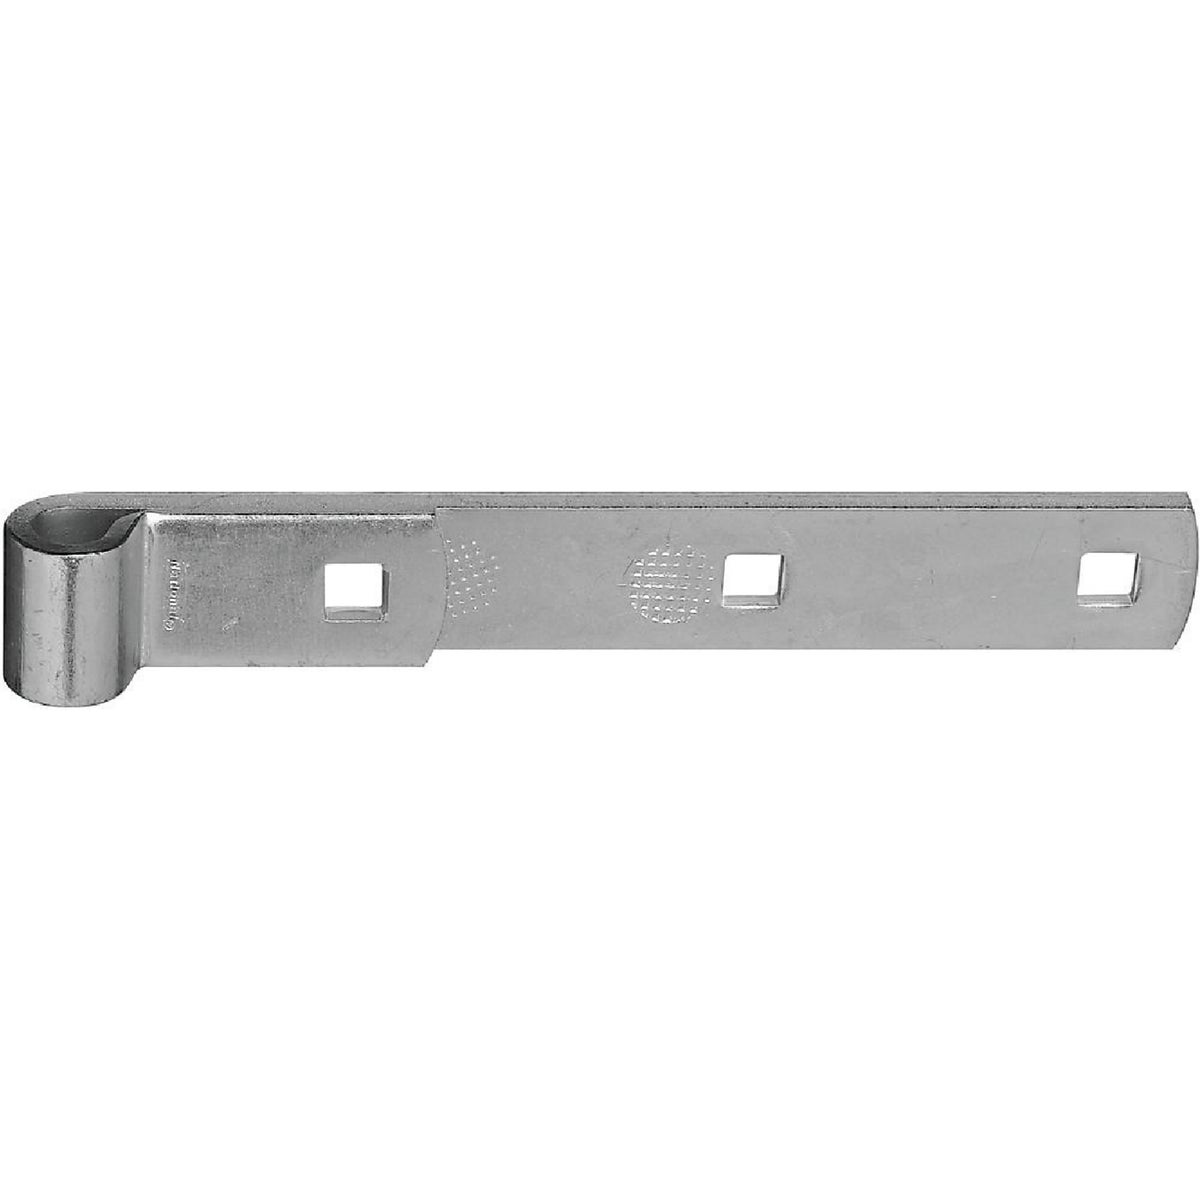 "8"" ZN HINGE STRAP - N131102 by National Mfg Co"